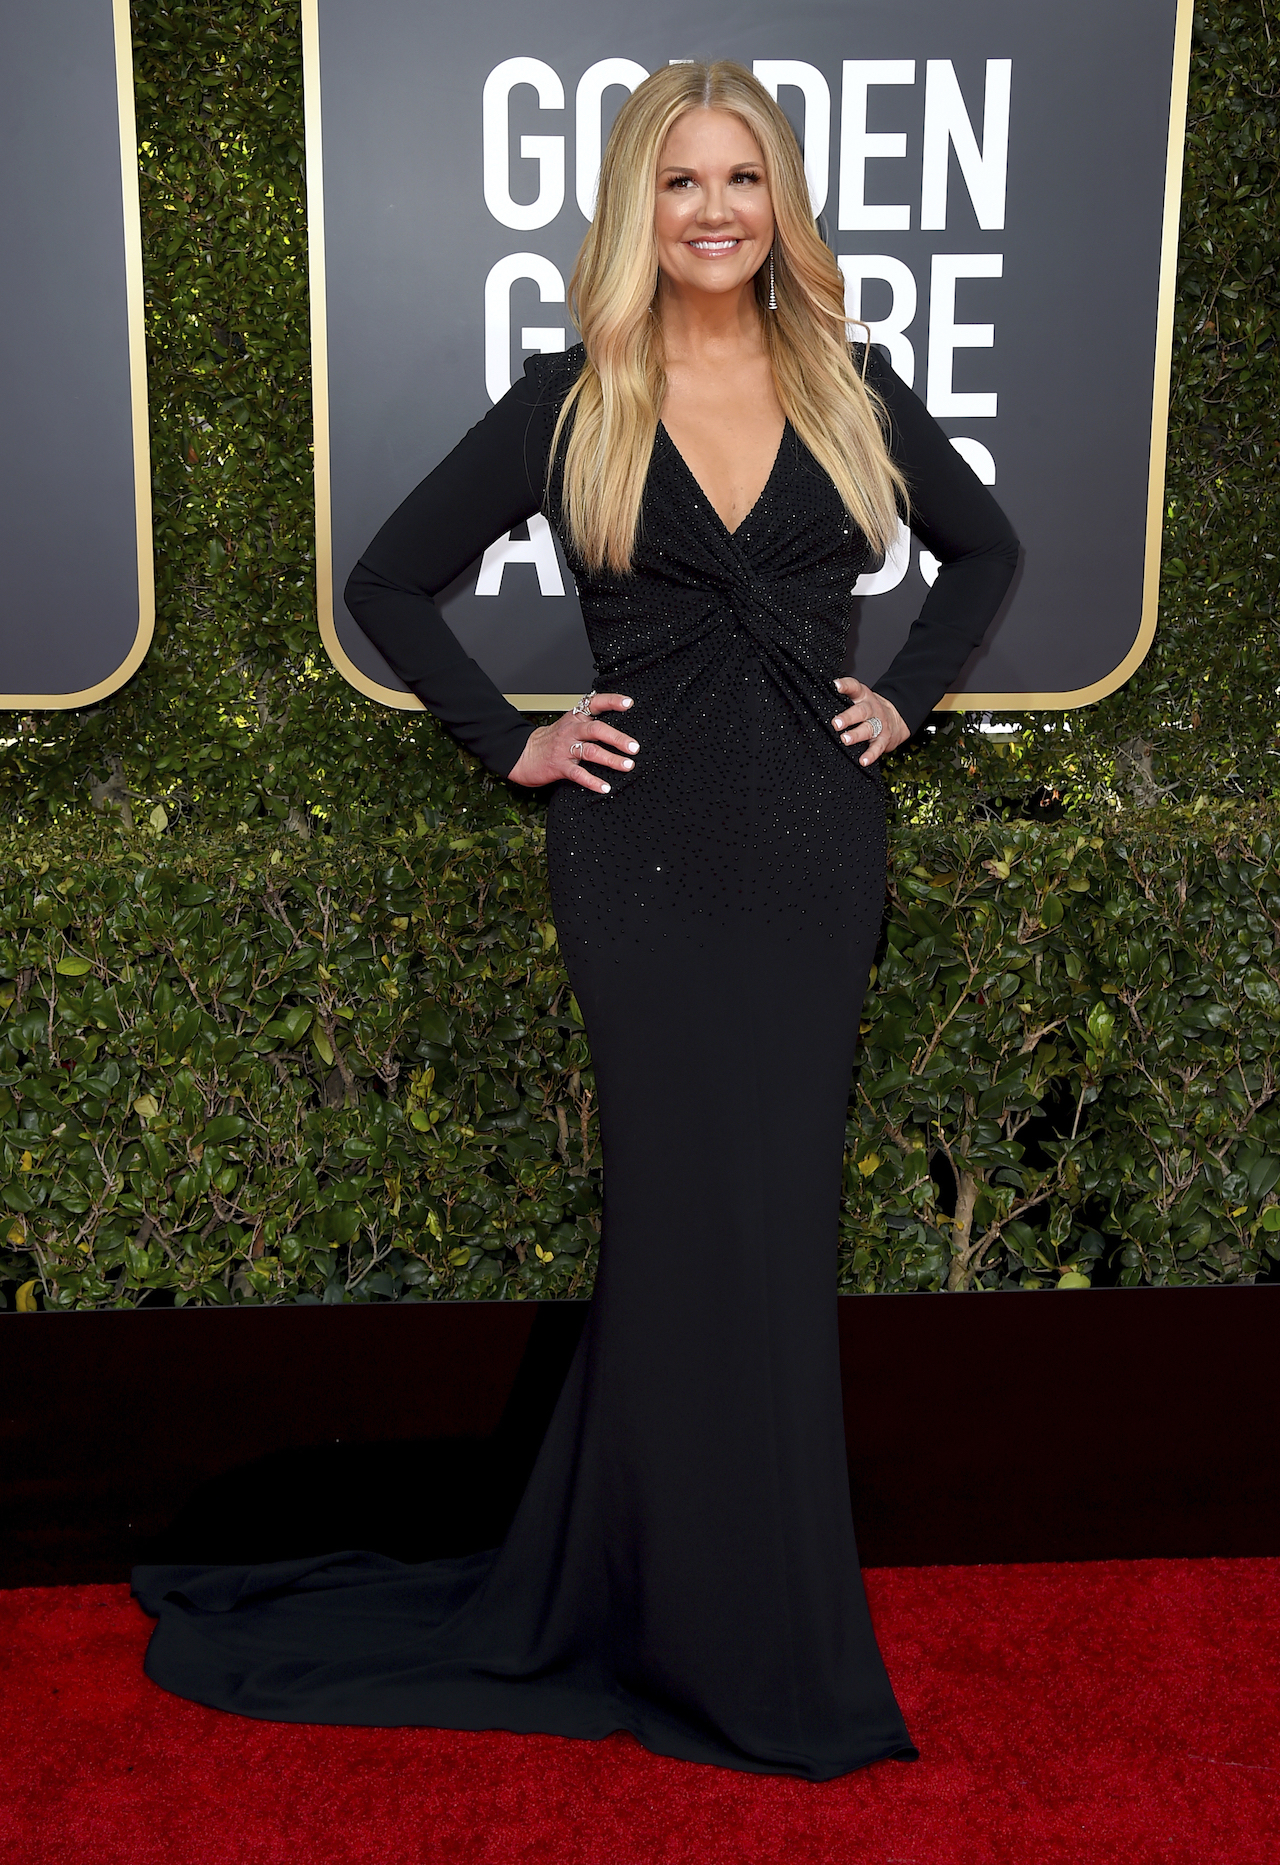 "<div class=""meta image-caption""><div class=""origin-logo origin-image ap""><span>AP</span></div><span class=""caption-text"">Nancy O'Dell arrives at the 76th annual Golden Globe Awards at the Beverly Hilton Hotel on Sunday, Jan. 6, 2019, in Beverly Hills, Calif. (Invision)</span></div>"